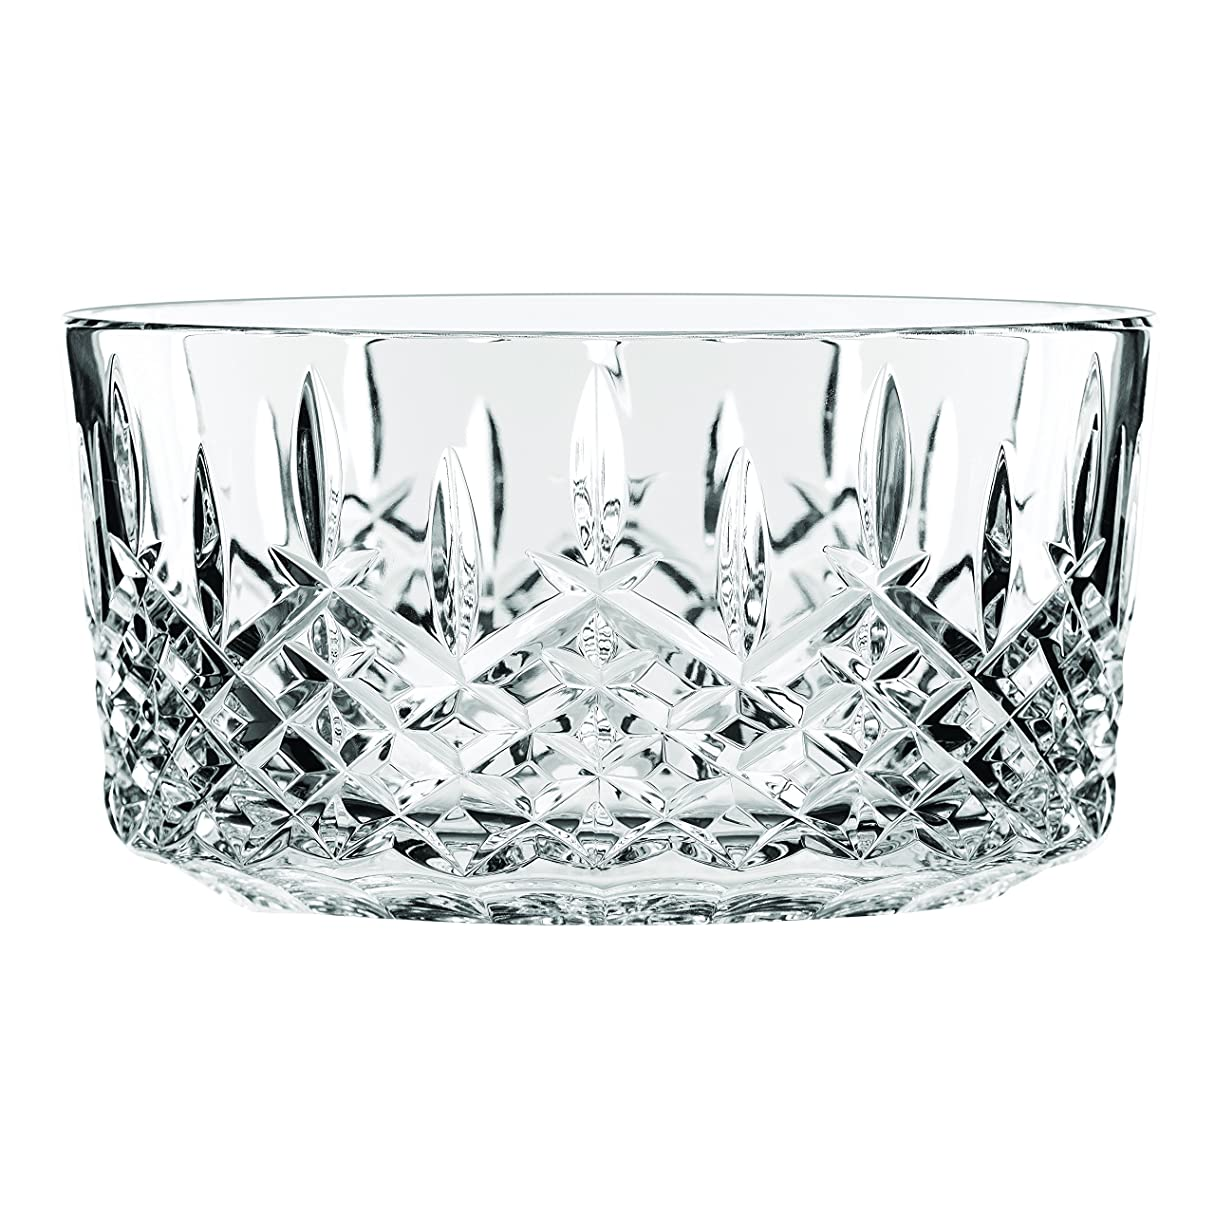 ドリル絶望気味の悪いMarkham by Waterford 9in Bowl, Set of 1, Clear by Waterford